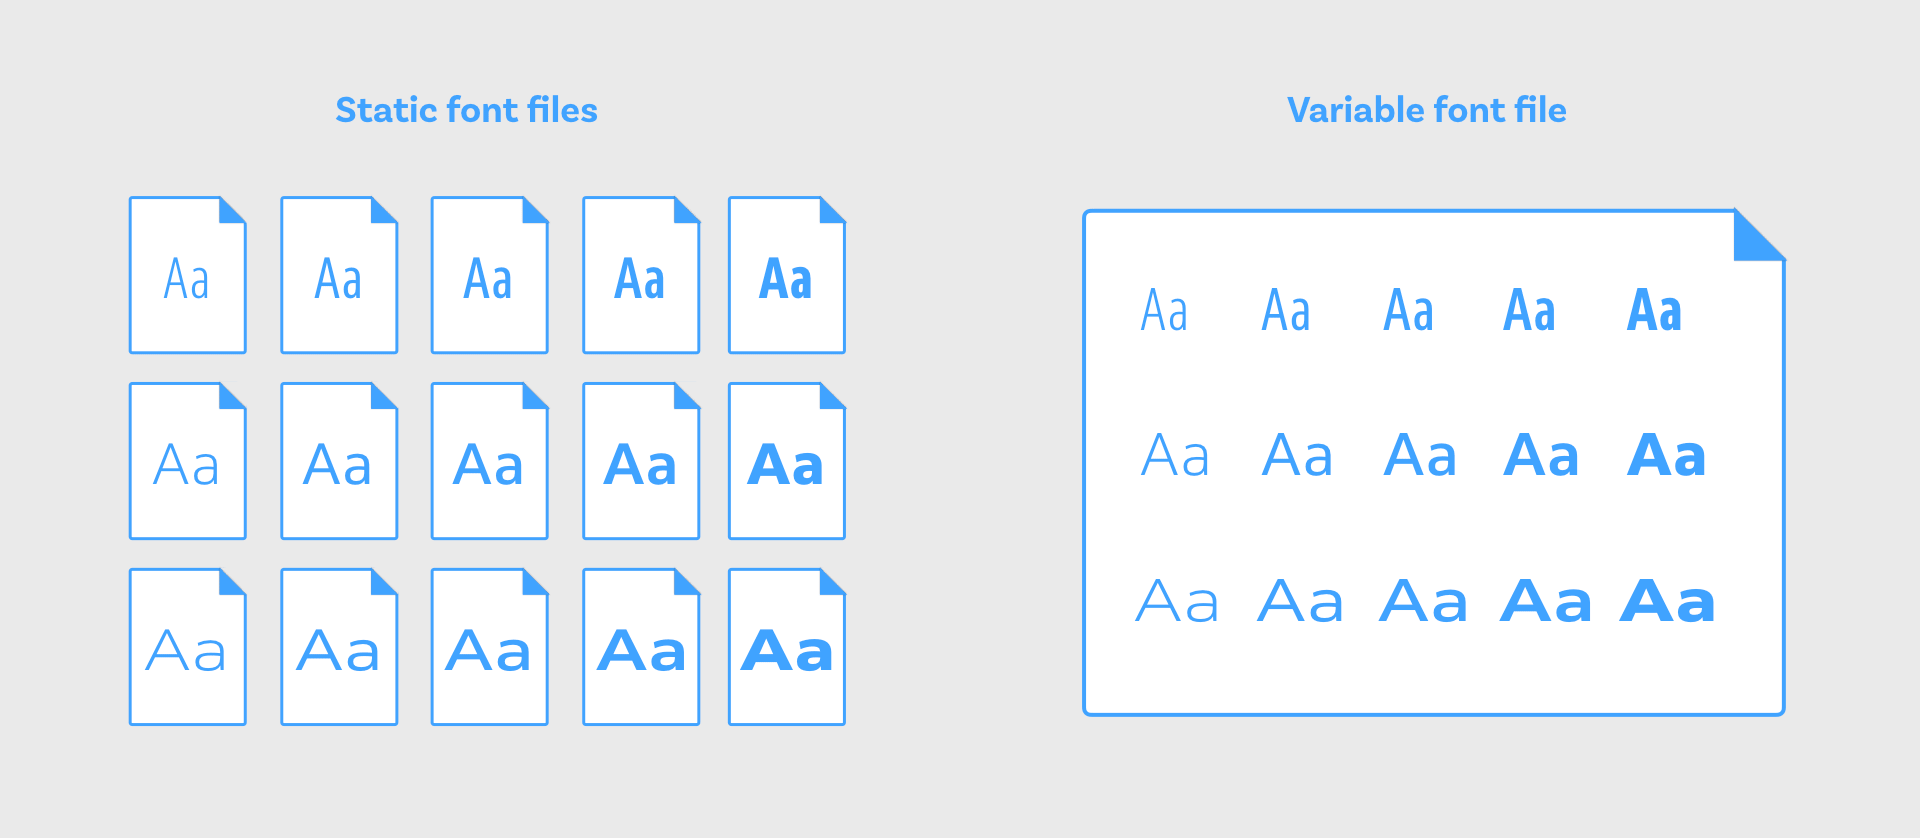 The designs of serveral static font files can be stored in one single variable font file